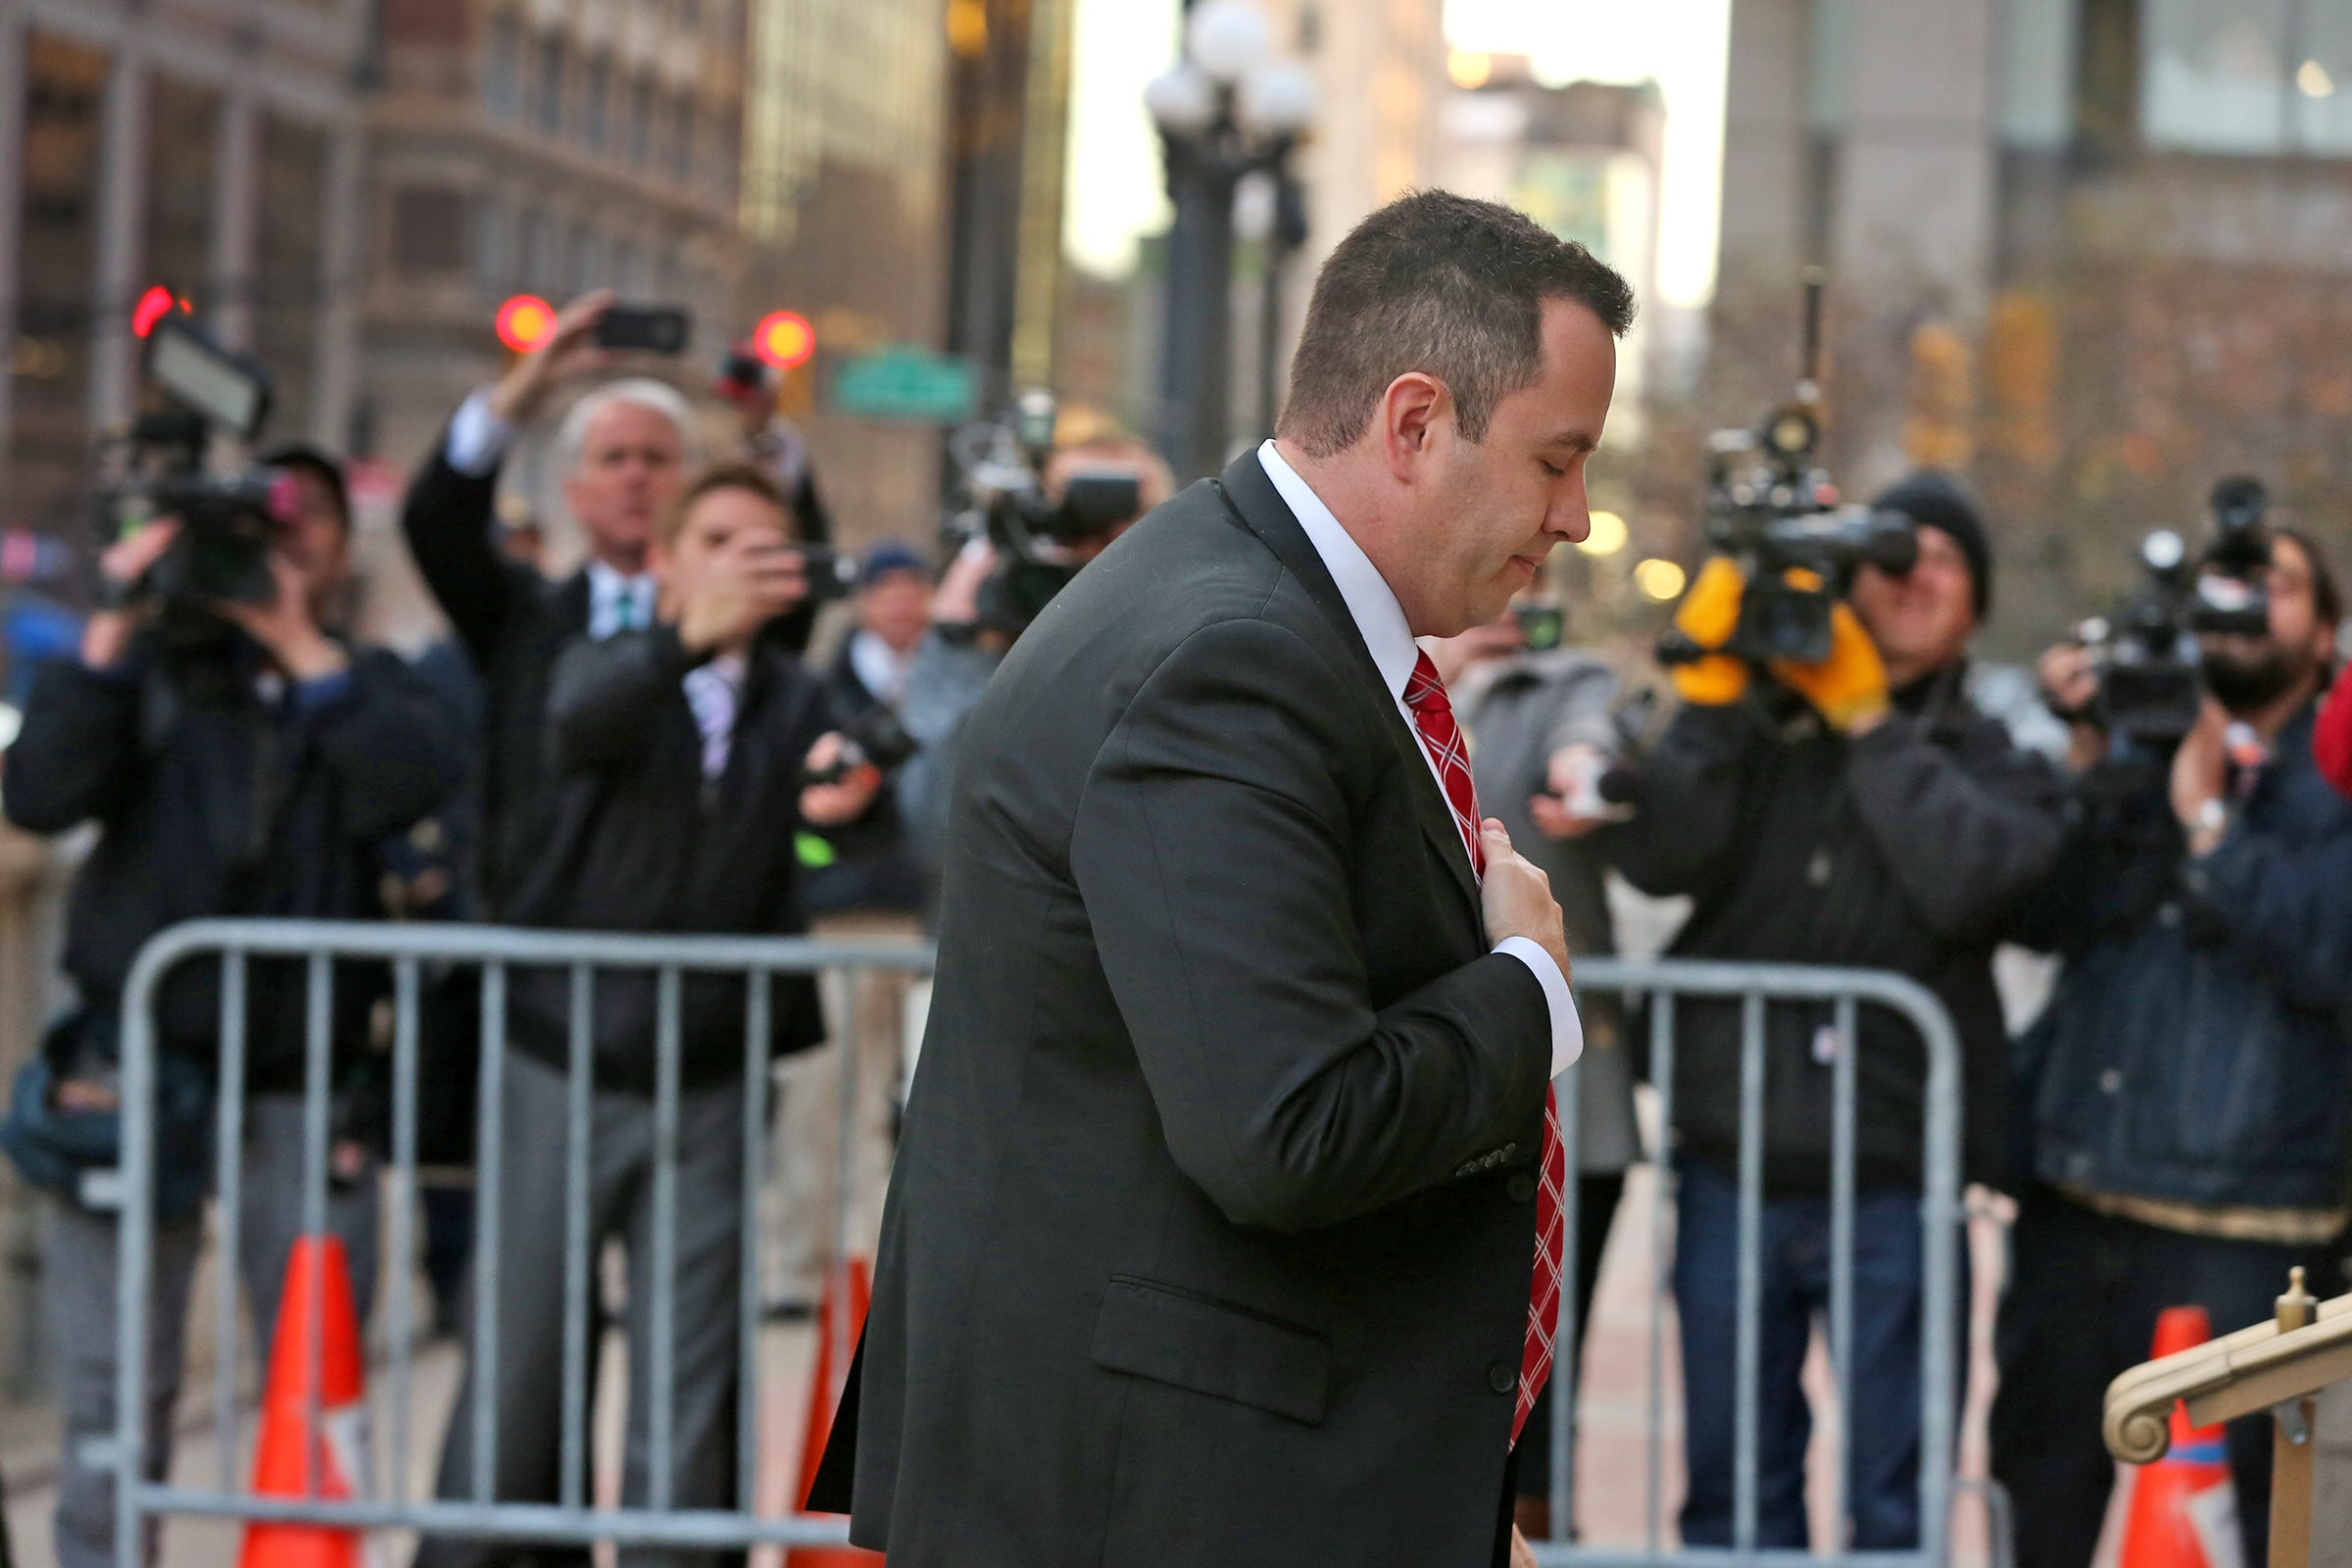 Jared Fogle files motion to have judge removed from his case